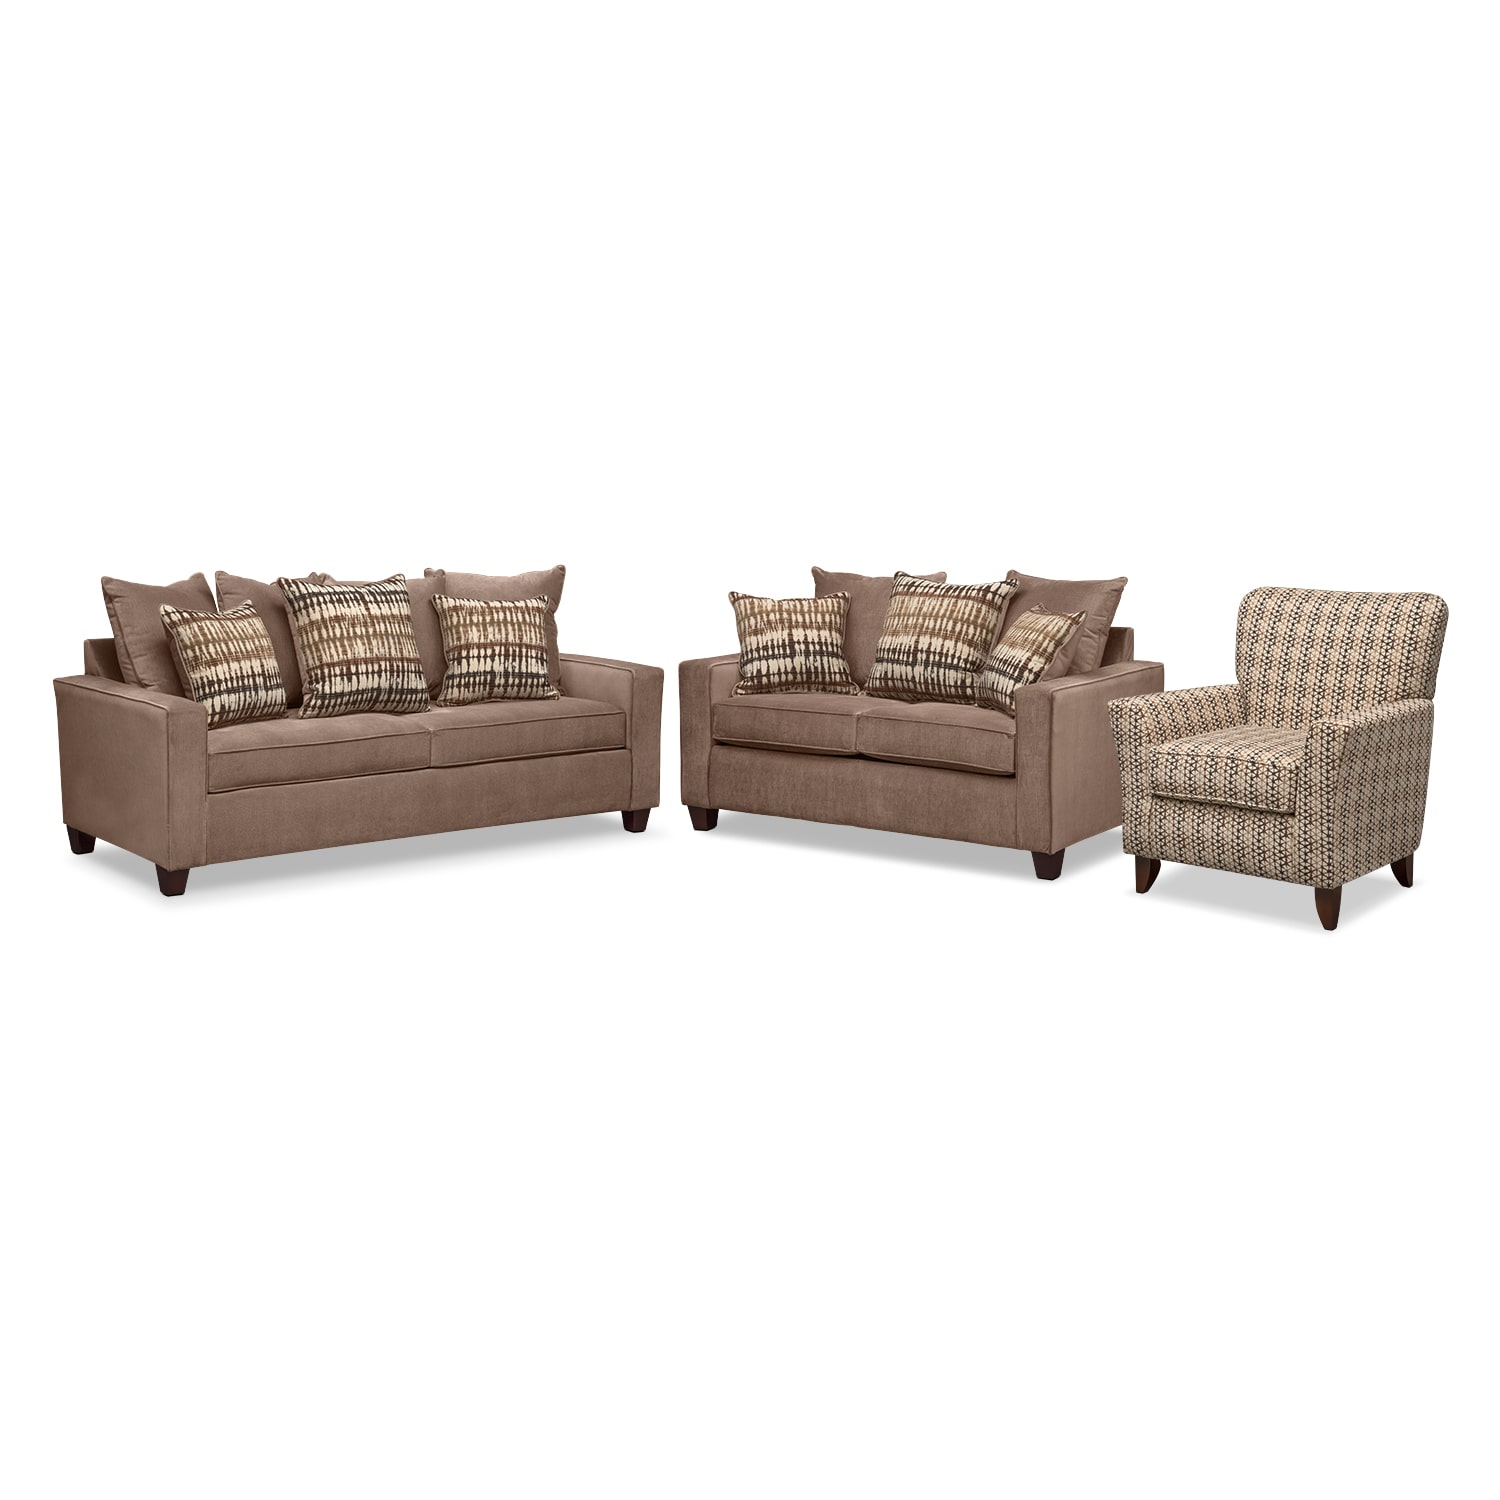 Bryden Memory Foam Sleeper Sofa, Loveseat and Accent Chair Set - Chocolate